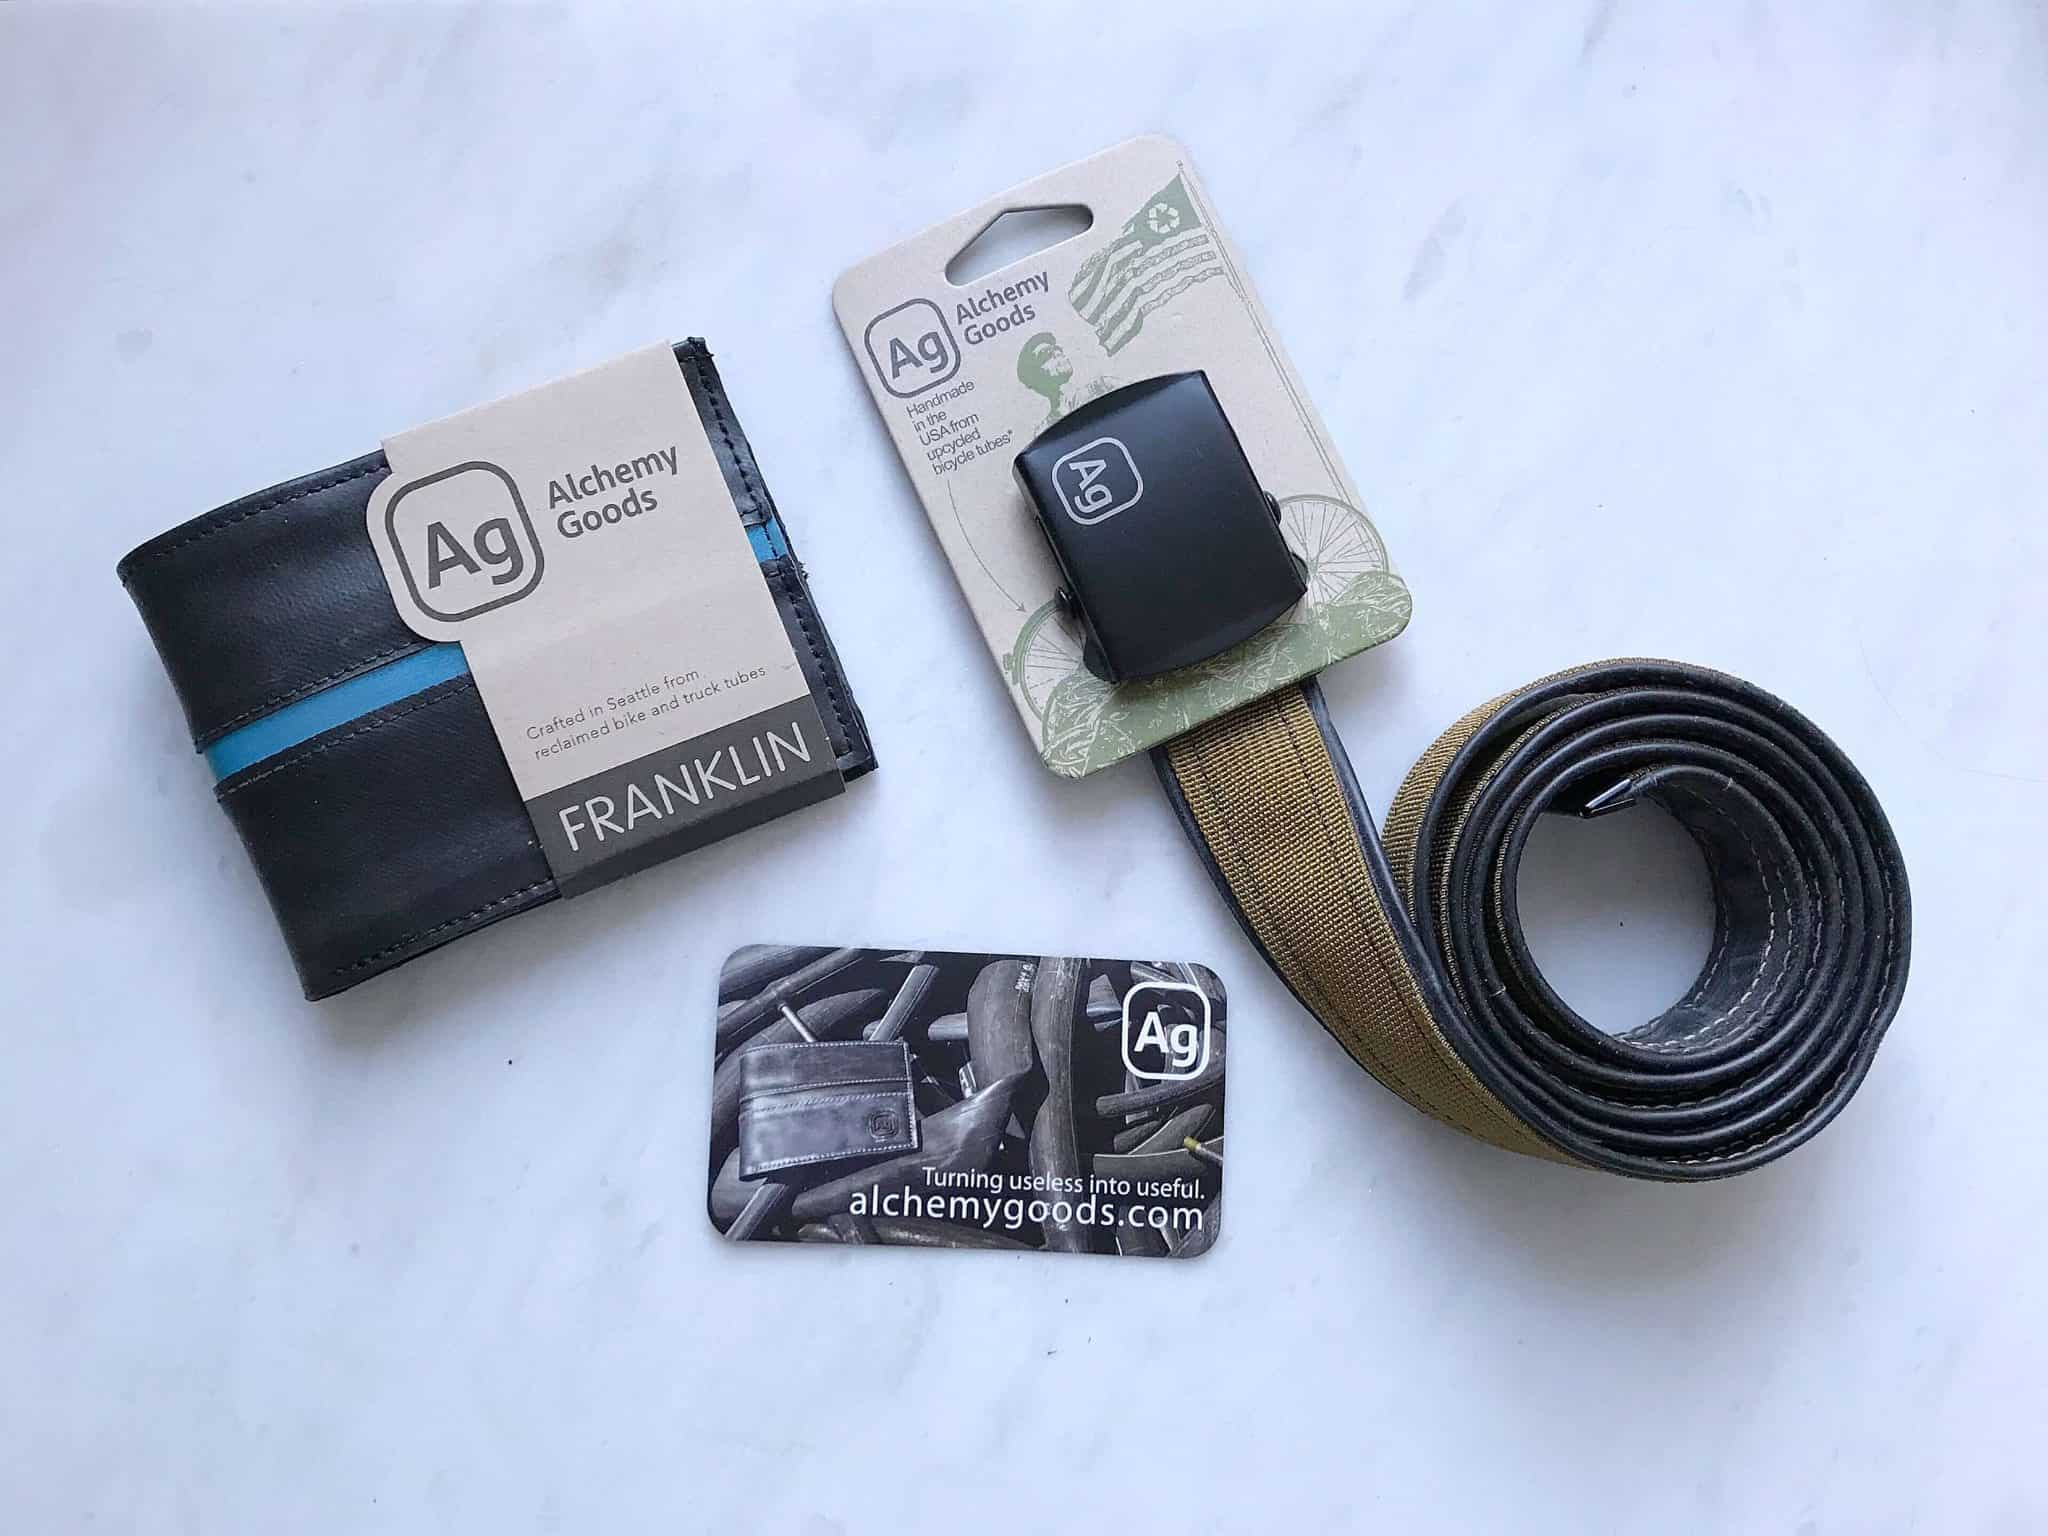 Ethical gifts for him guide, with Alchemy Goods recycled belt and wallet from Uncommon Goods